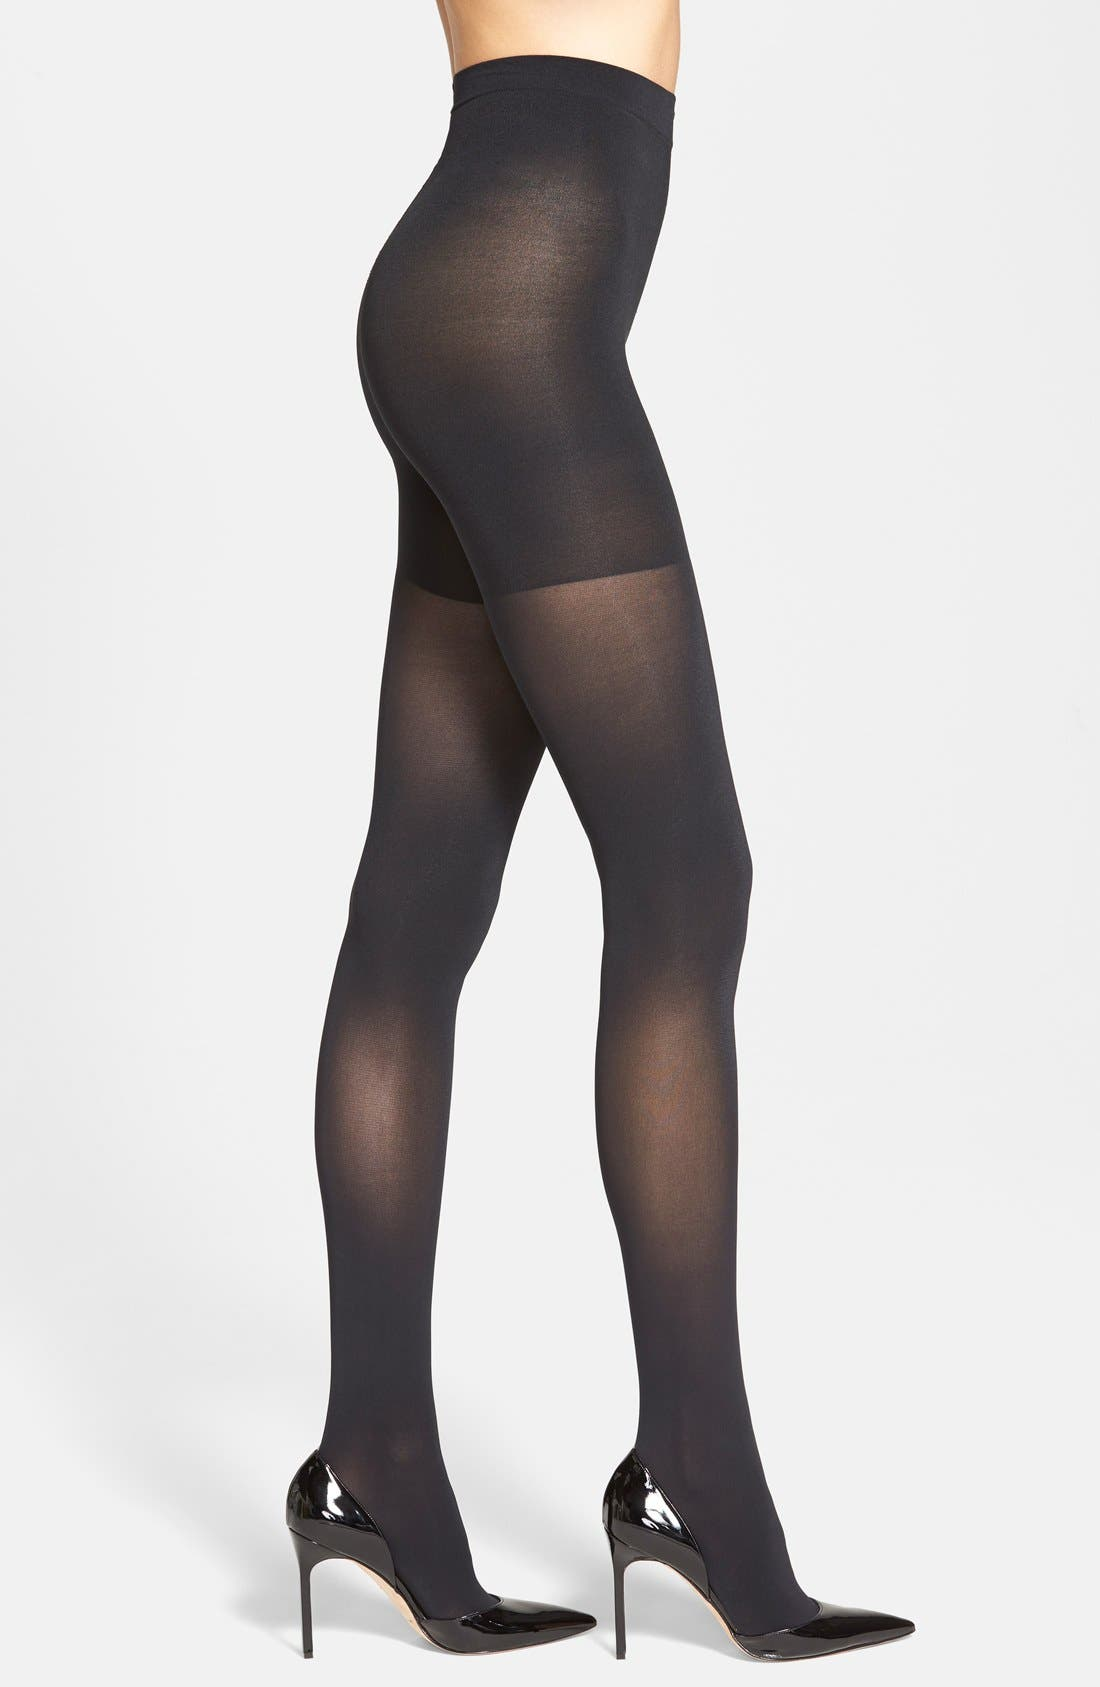 'Luxe' Leg Shaping Tights,                         Main,                         color, VERY BLACK